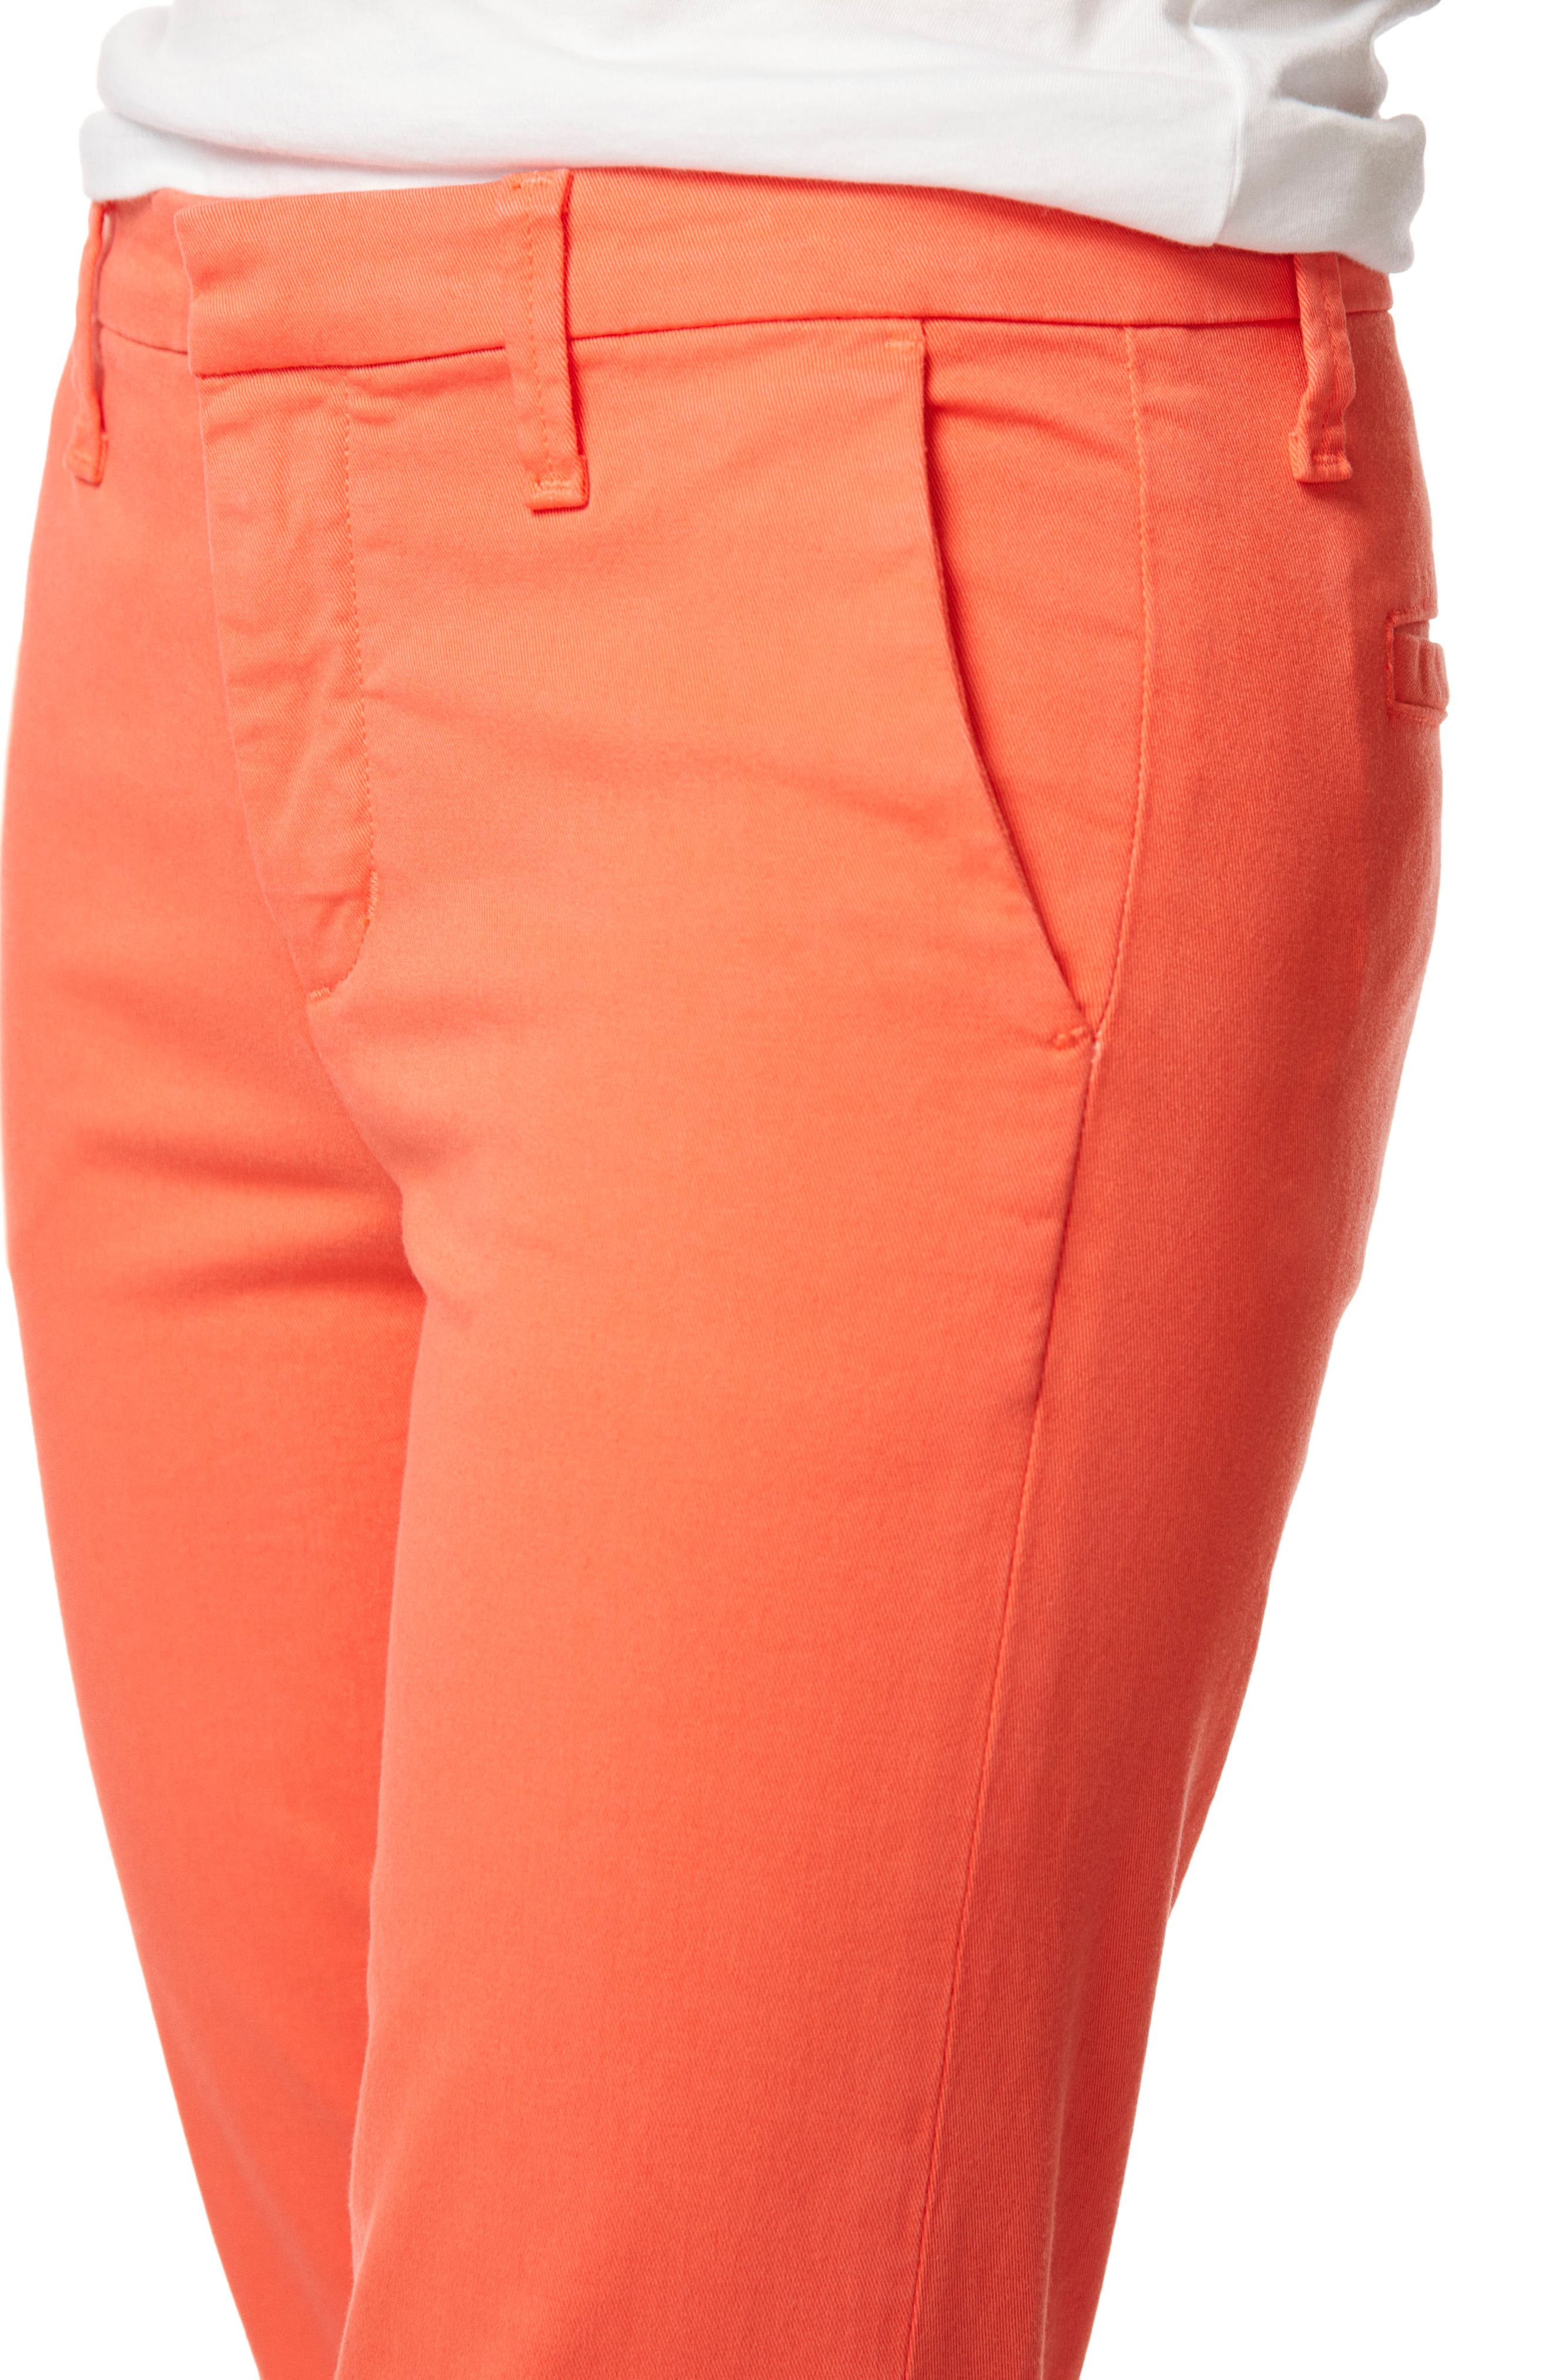 Clara Trousers,                             Alternate thumbnail 5, color,                             PASSION FRUIT